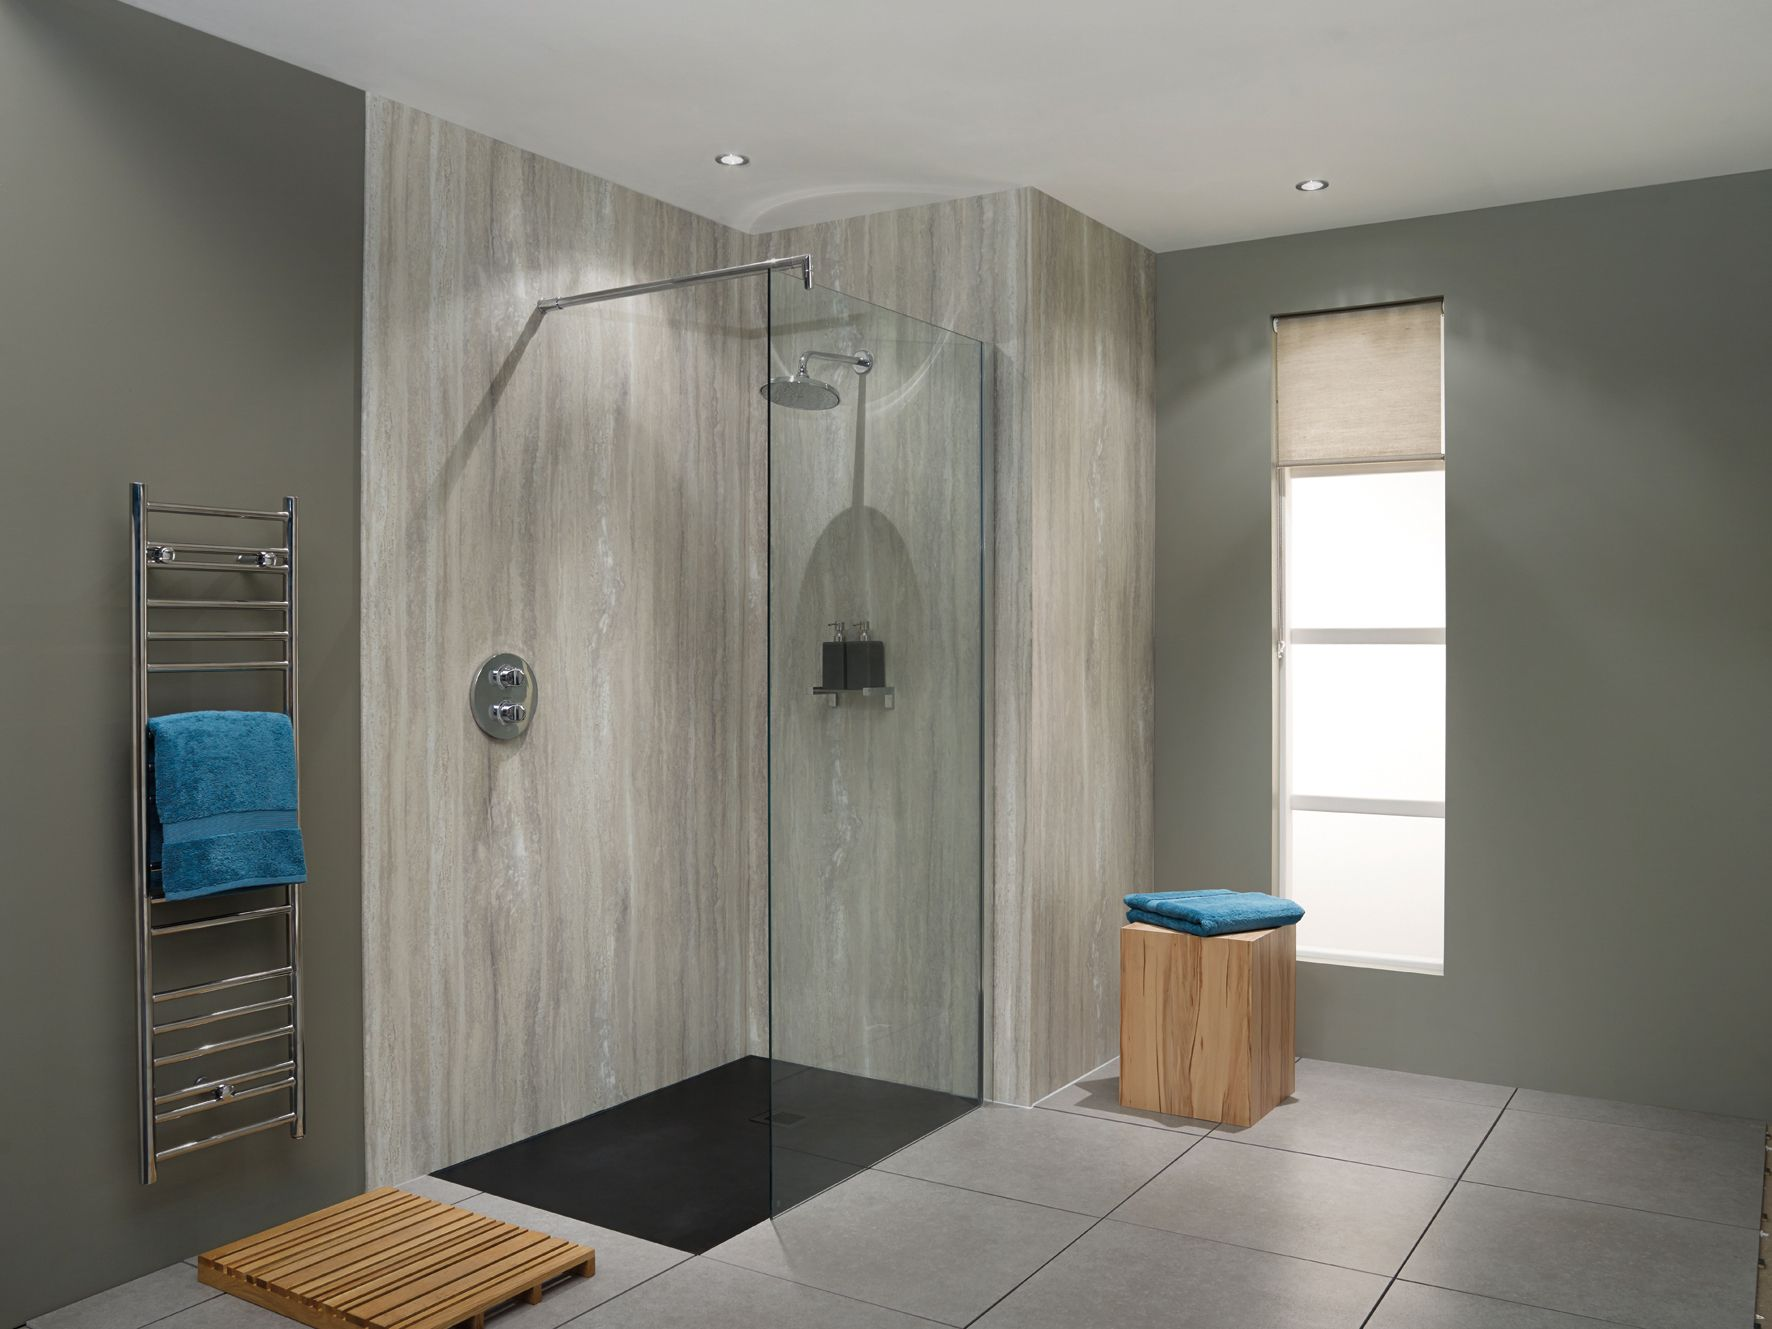 Nuance Laminate Panelling Is An Ideal Alternative To Tiling There Are No Grout Lines To Scrub At An Bathroom Wall Panels Shower Panels Bathroom Shower Panels